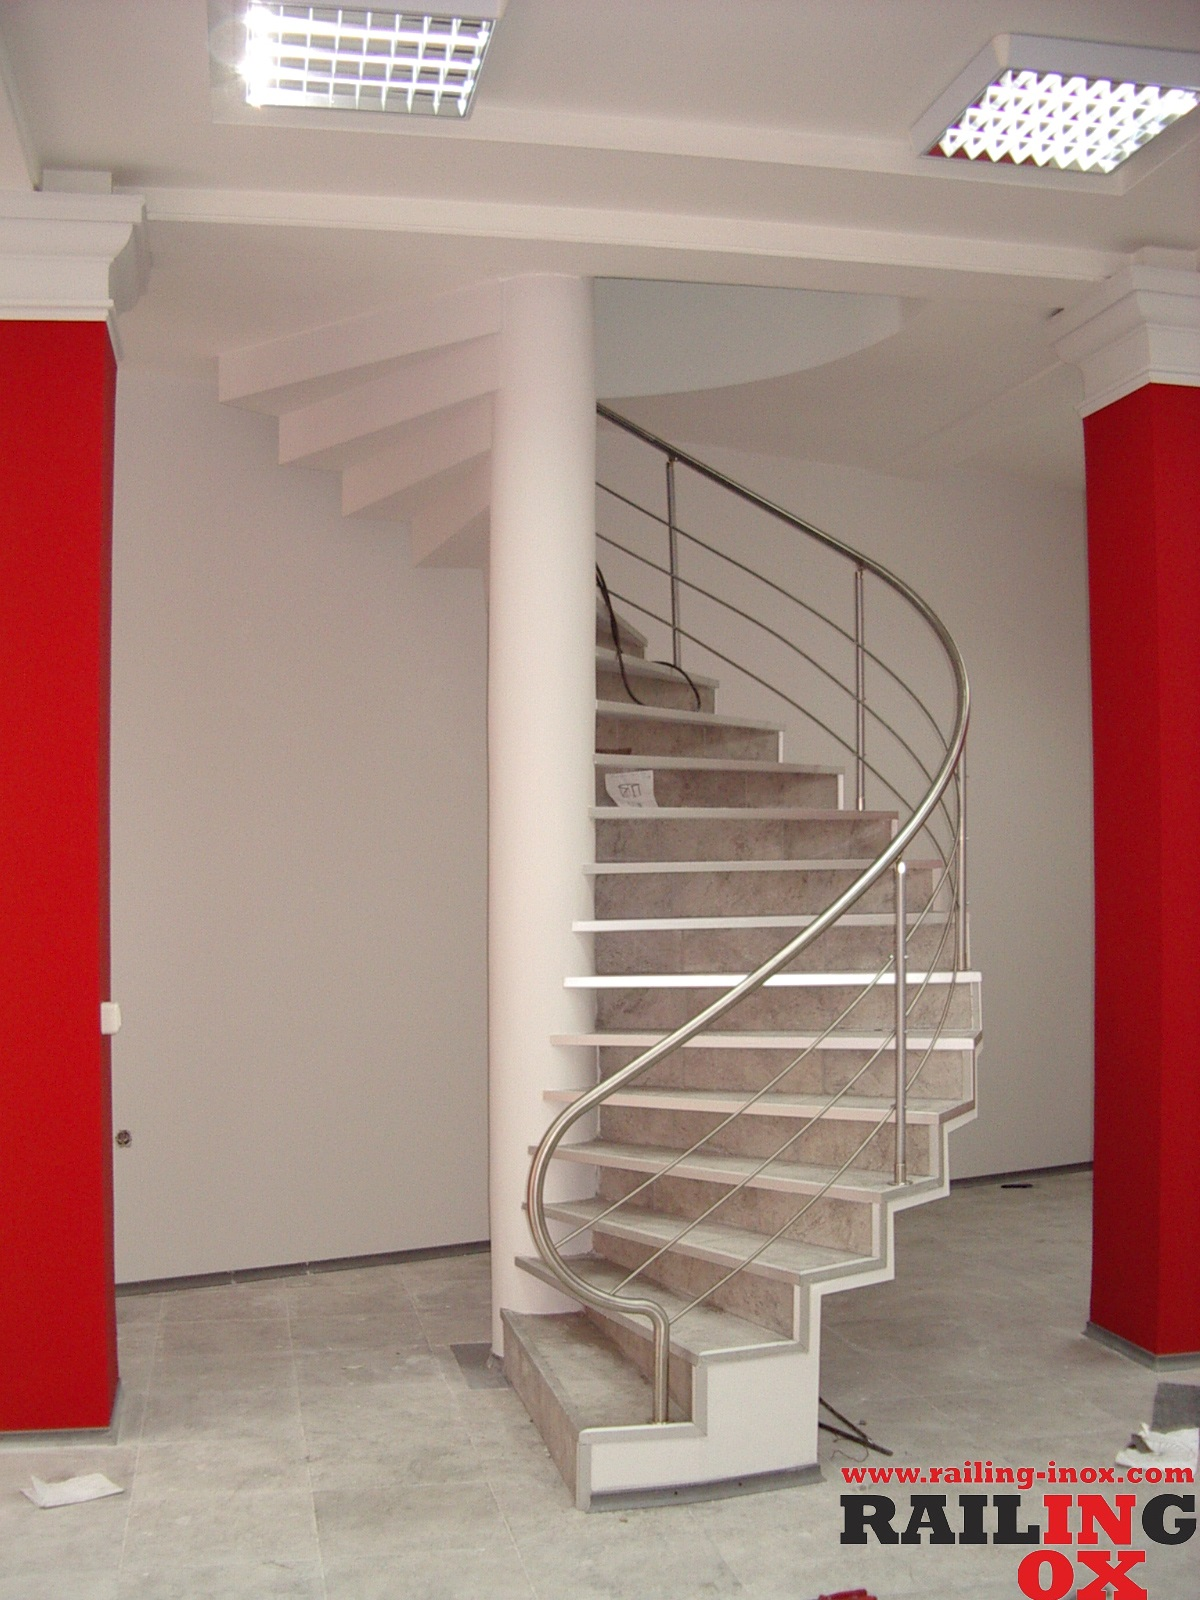 STRAIGHT OR SPIRAL STAIRS